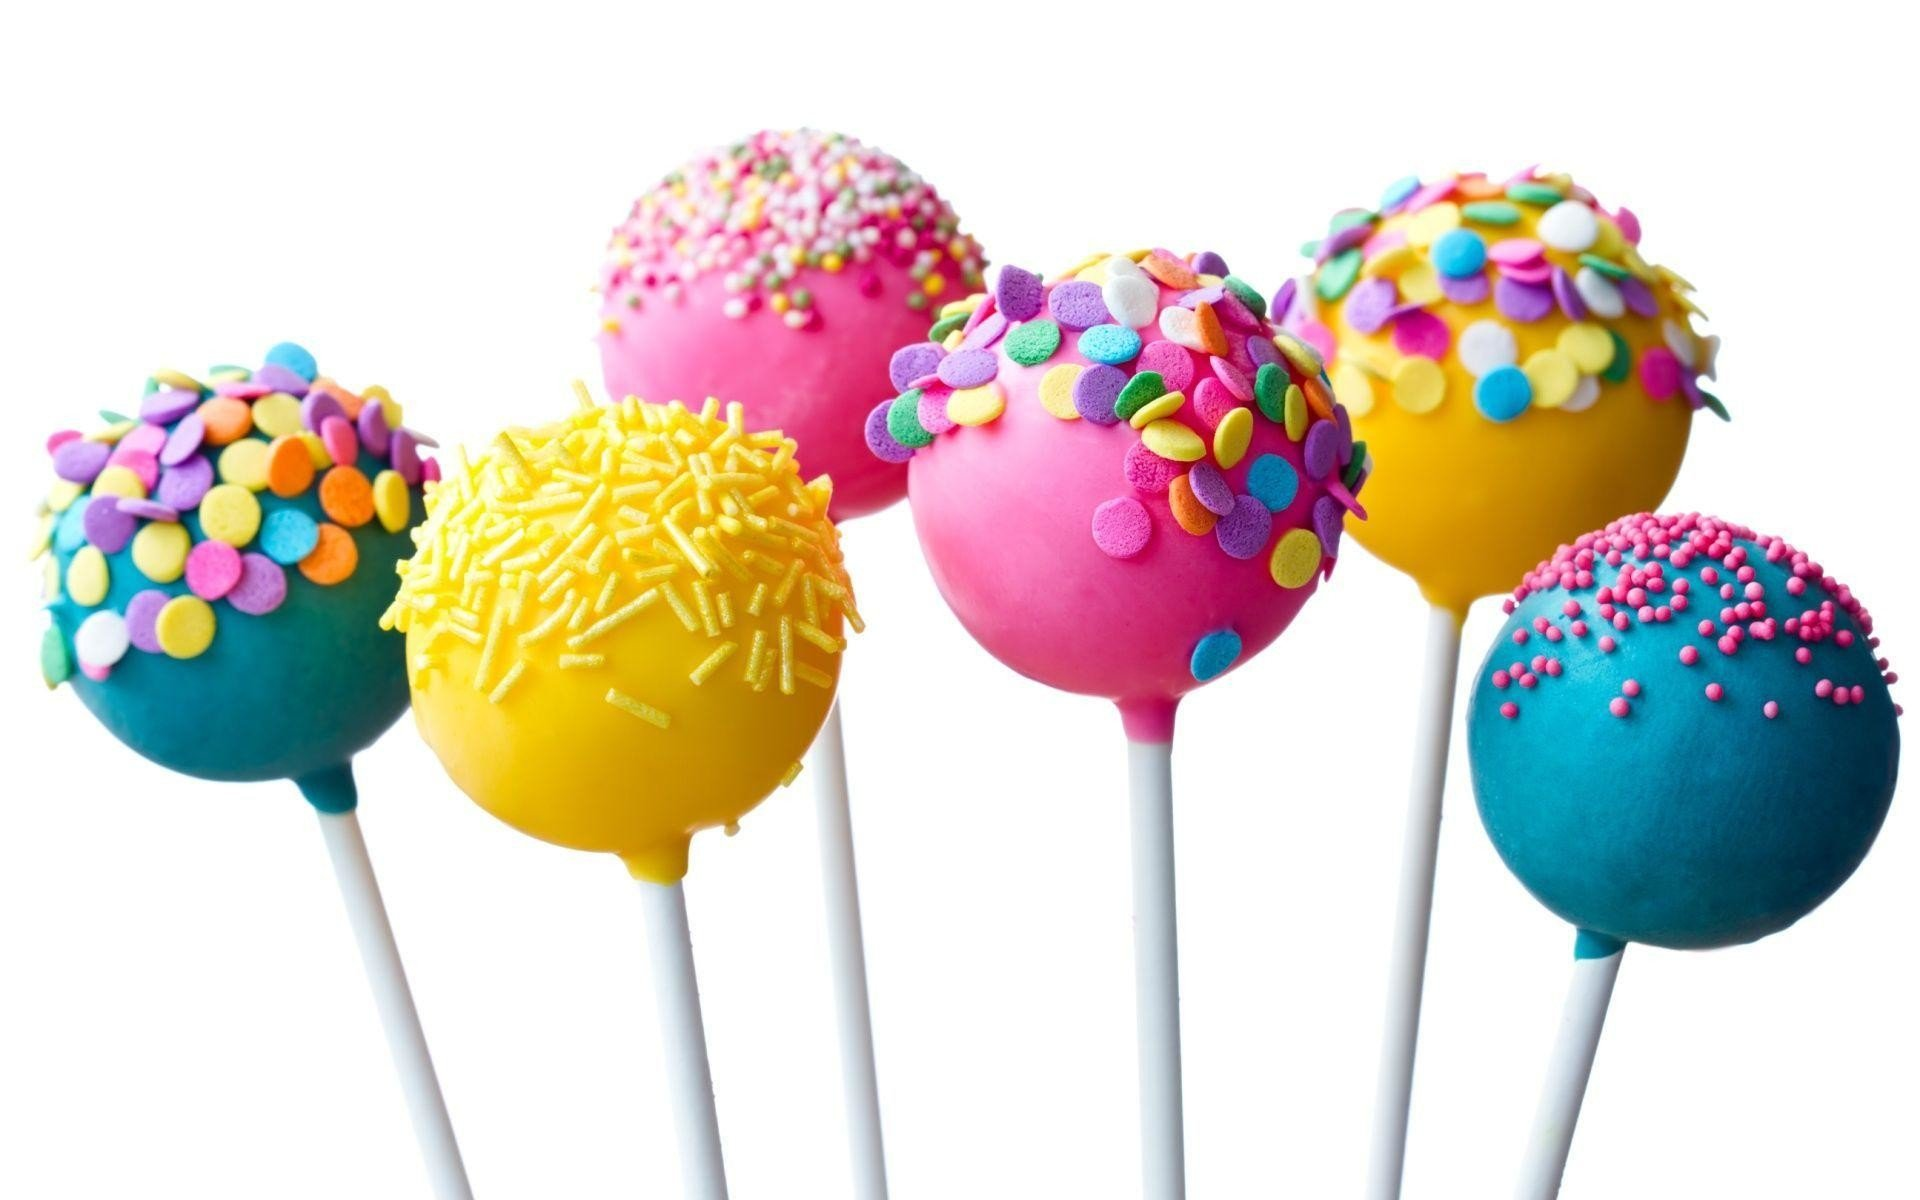 Cute Candy Wallpaper 53 images 1920x1200